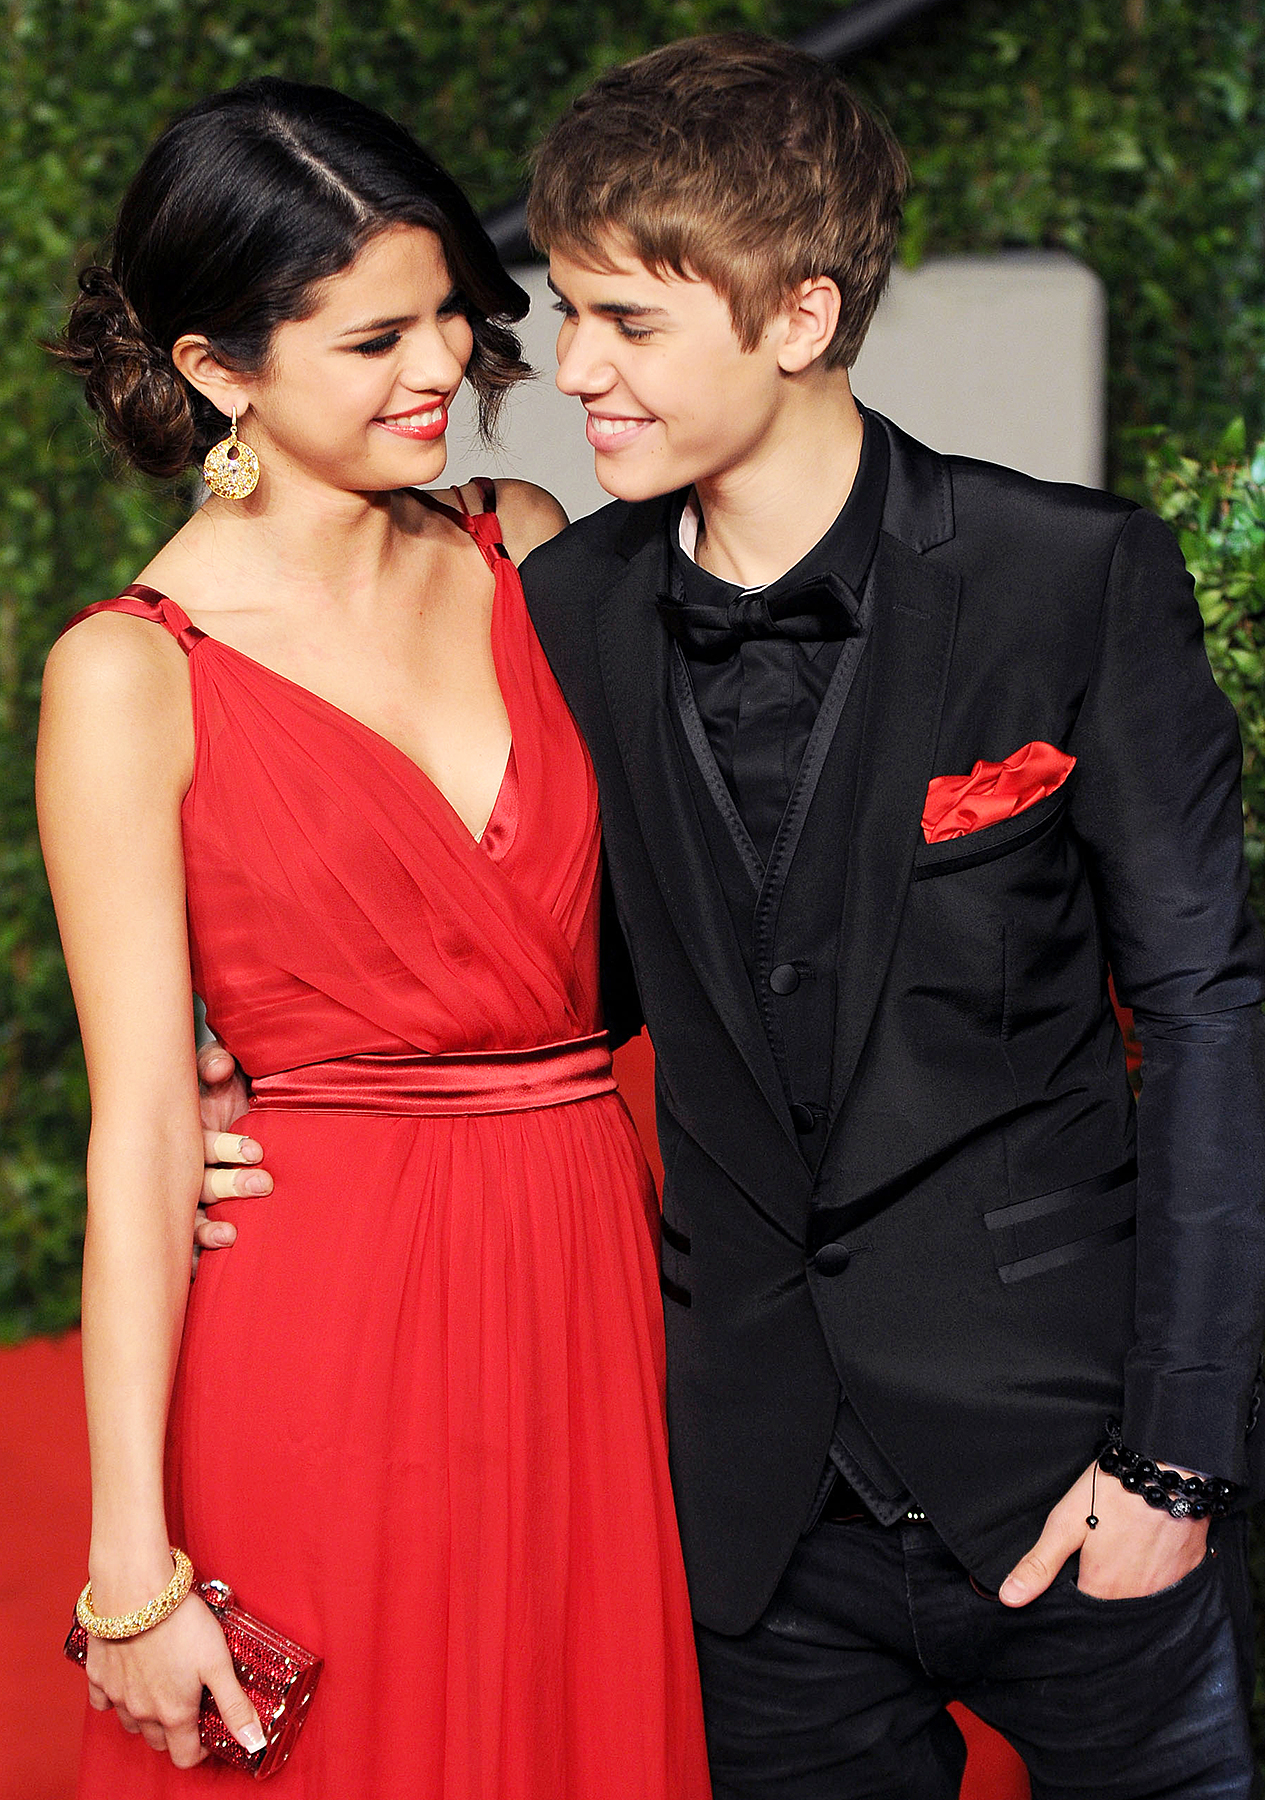 4593b7e6066 Justin Bieber and Selena Gomez  A Timeline of Their Relationship